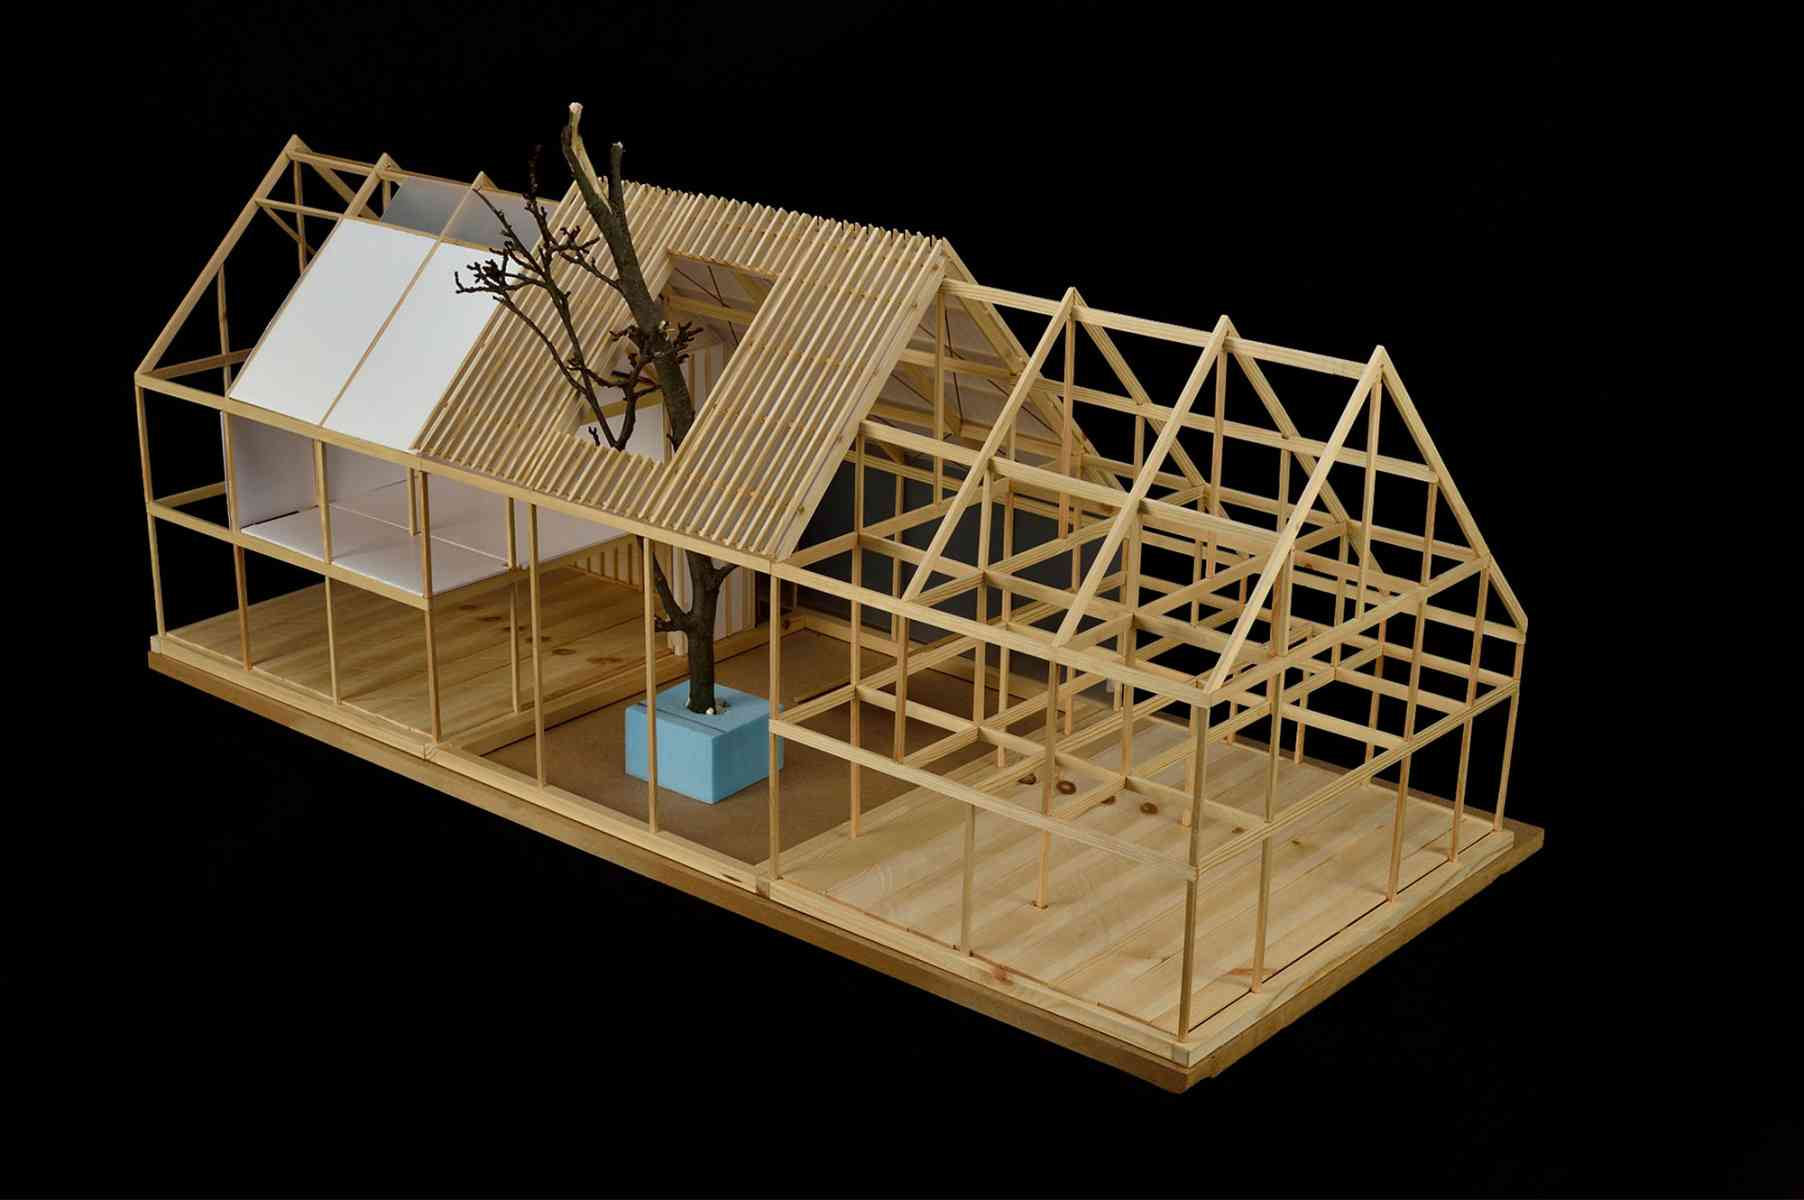 Marton Deme - Wimpole Hall Proposal - Developement Model, External view